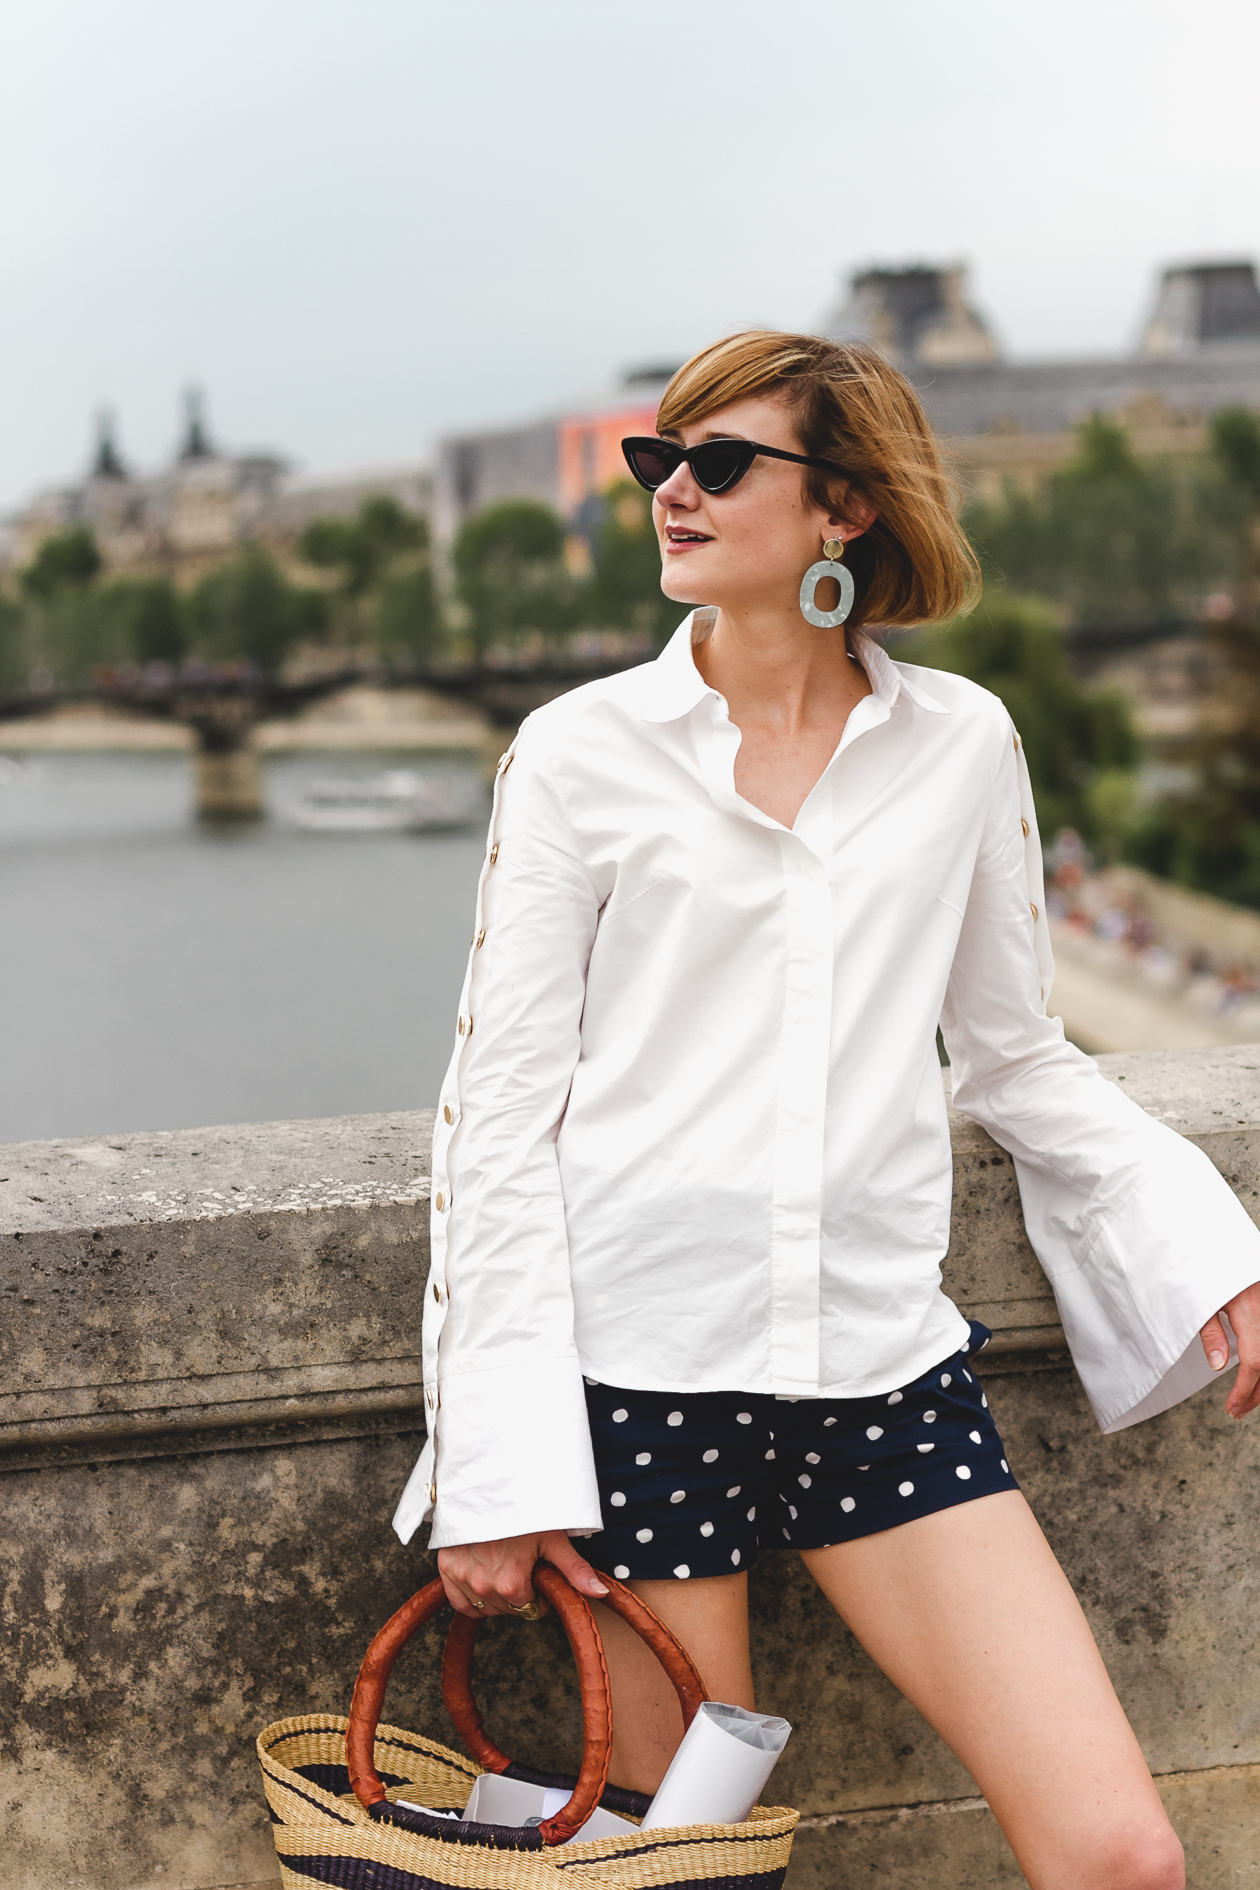 Pixie Market button-down and polka dot shorts